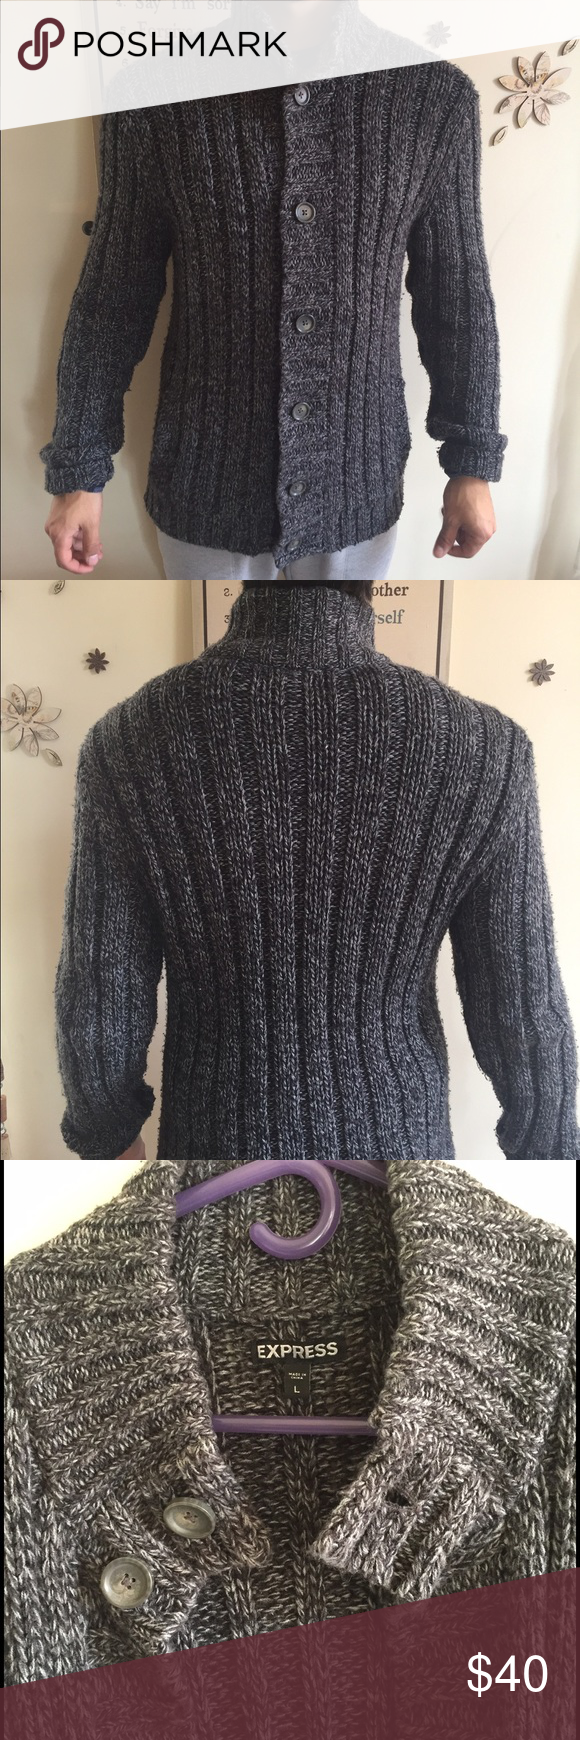 Express Buttoned Mock Neck Sweater Charcoal/black color, has pockets on both sides, fits to form. 40% merino wool, 60% acrylic. Very warm, long length, great condition. Fits a medium with the sleeve rolled up as shown in pictures Express Sweaters